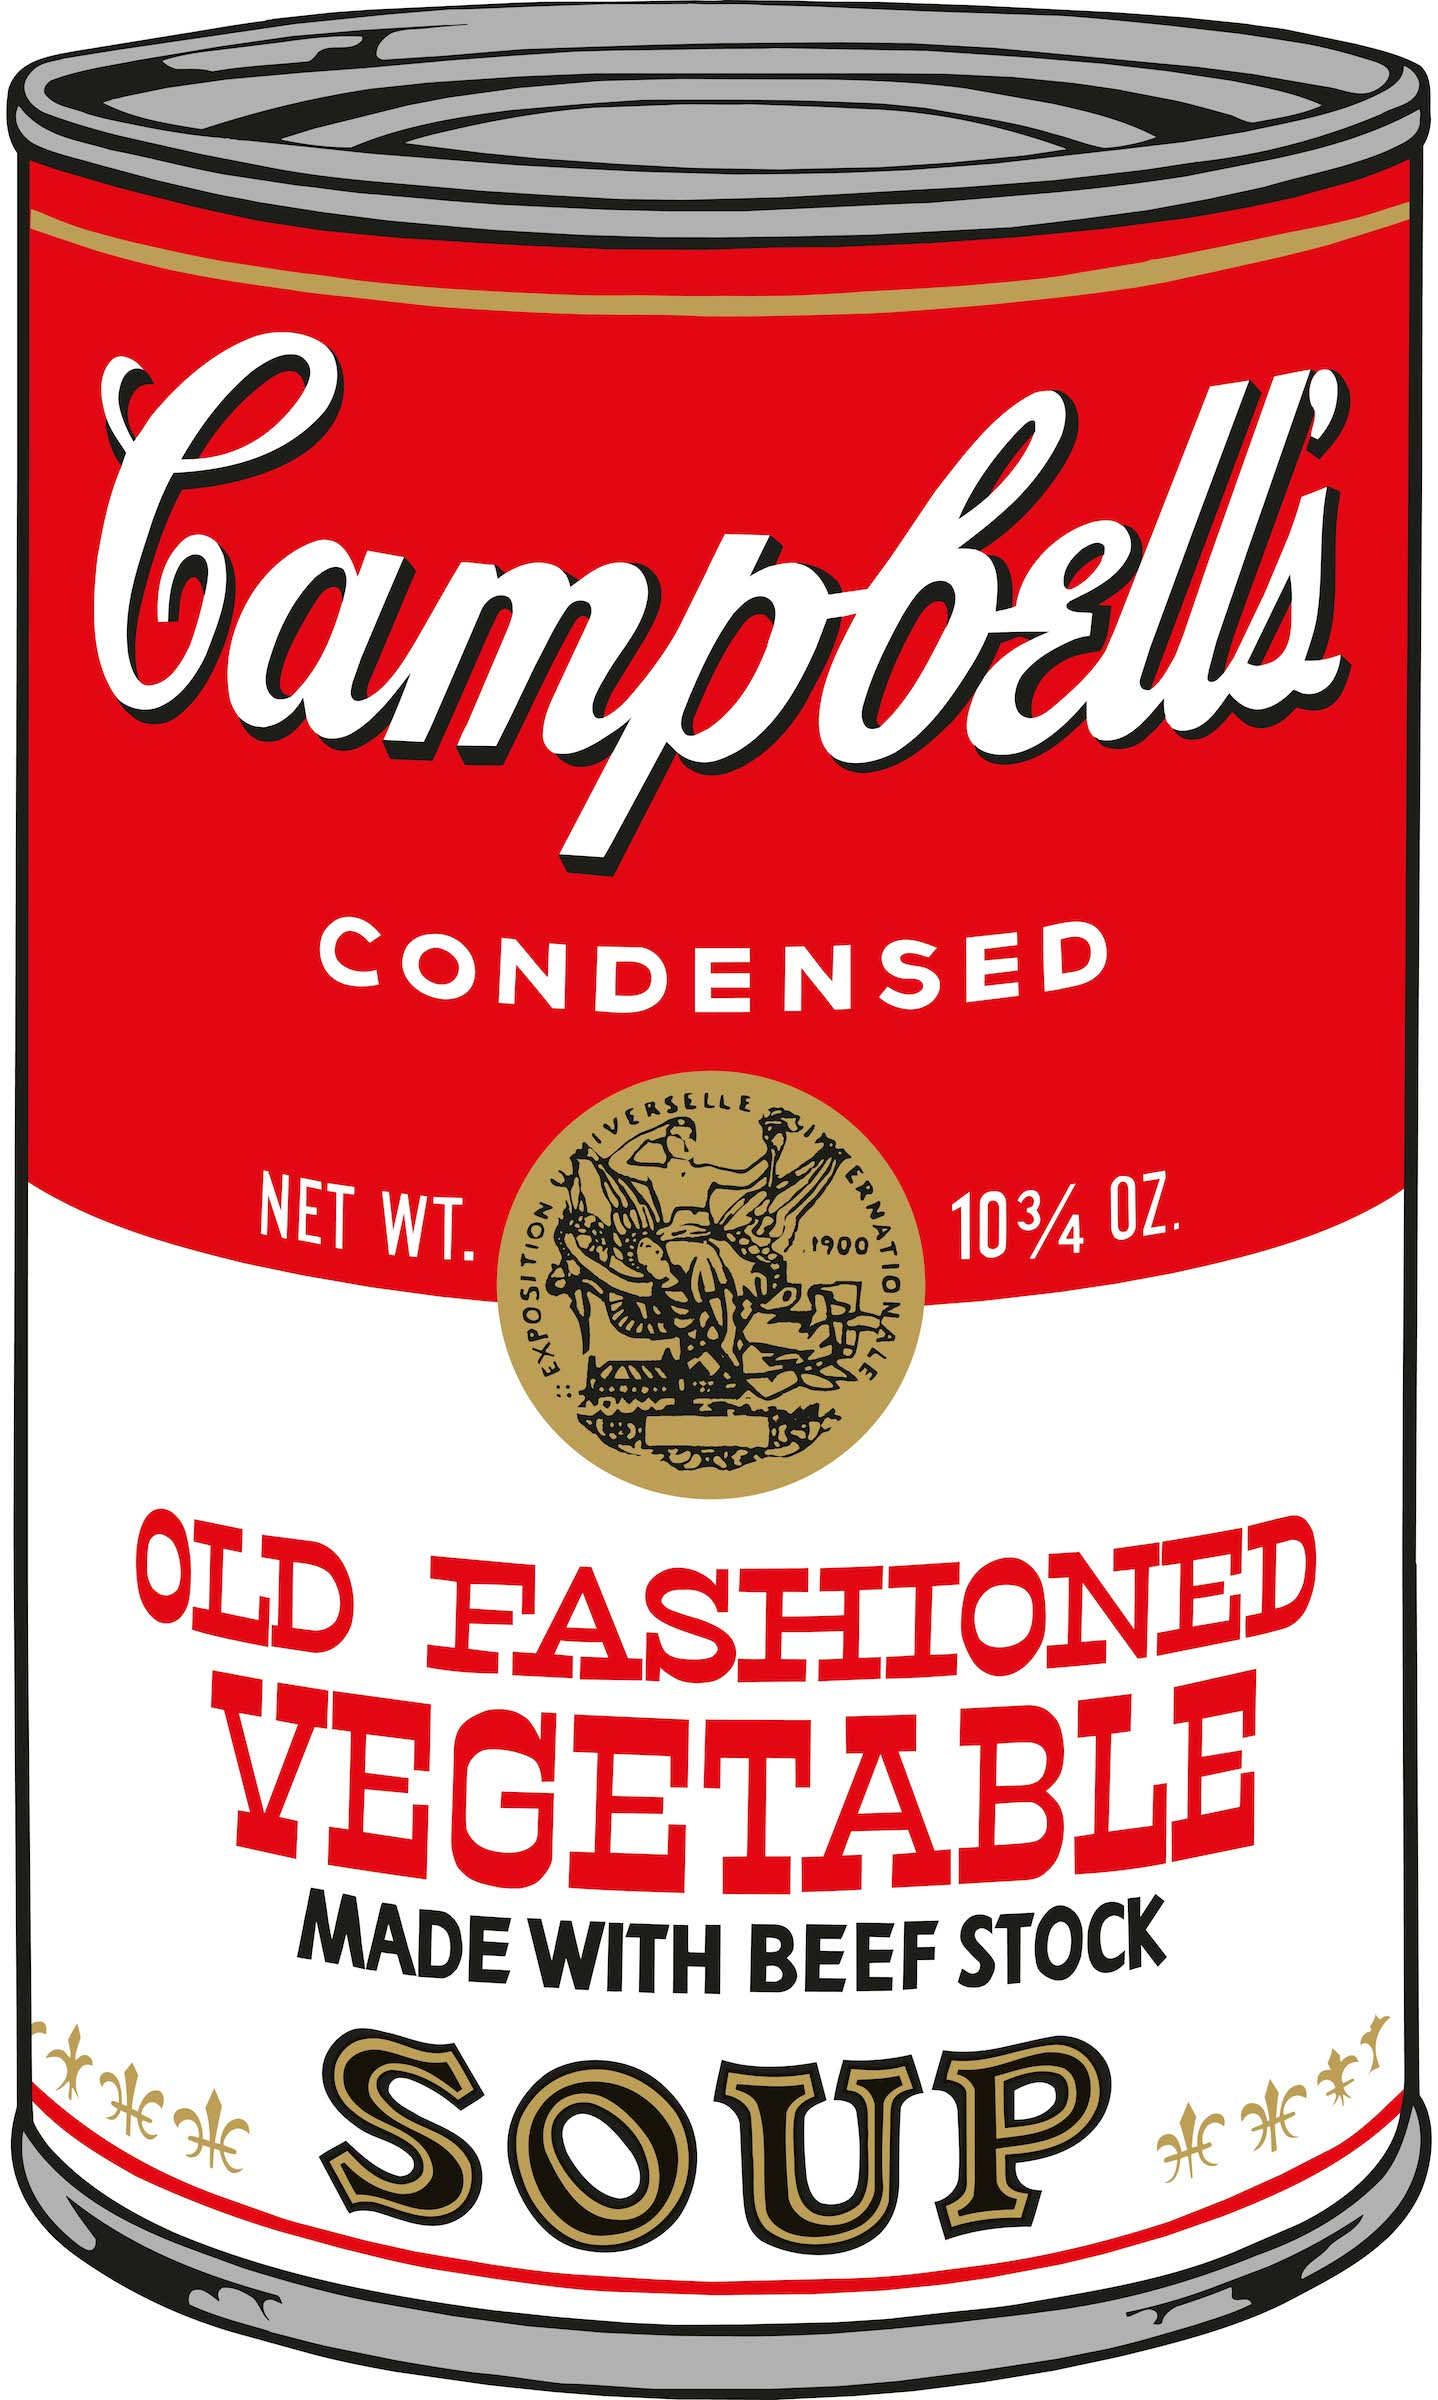 Warhol Campbell's Soup.